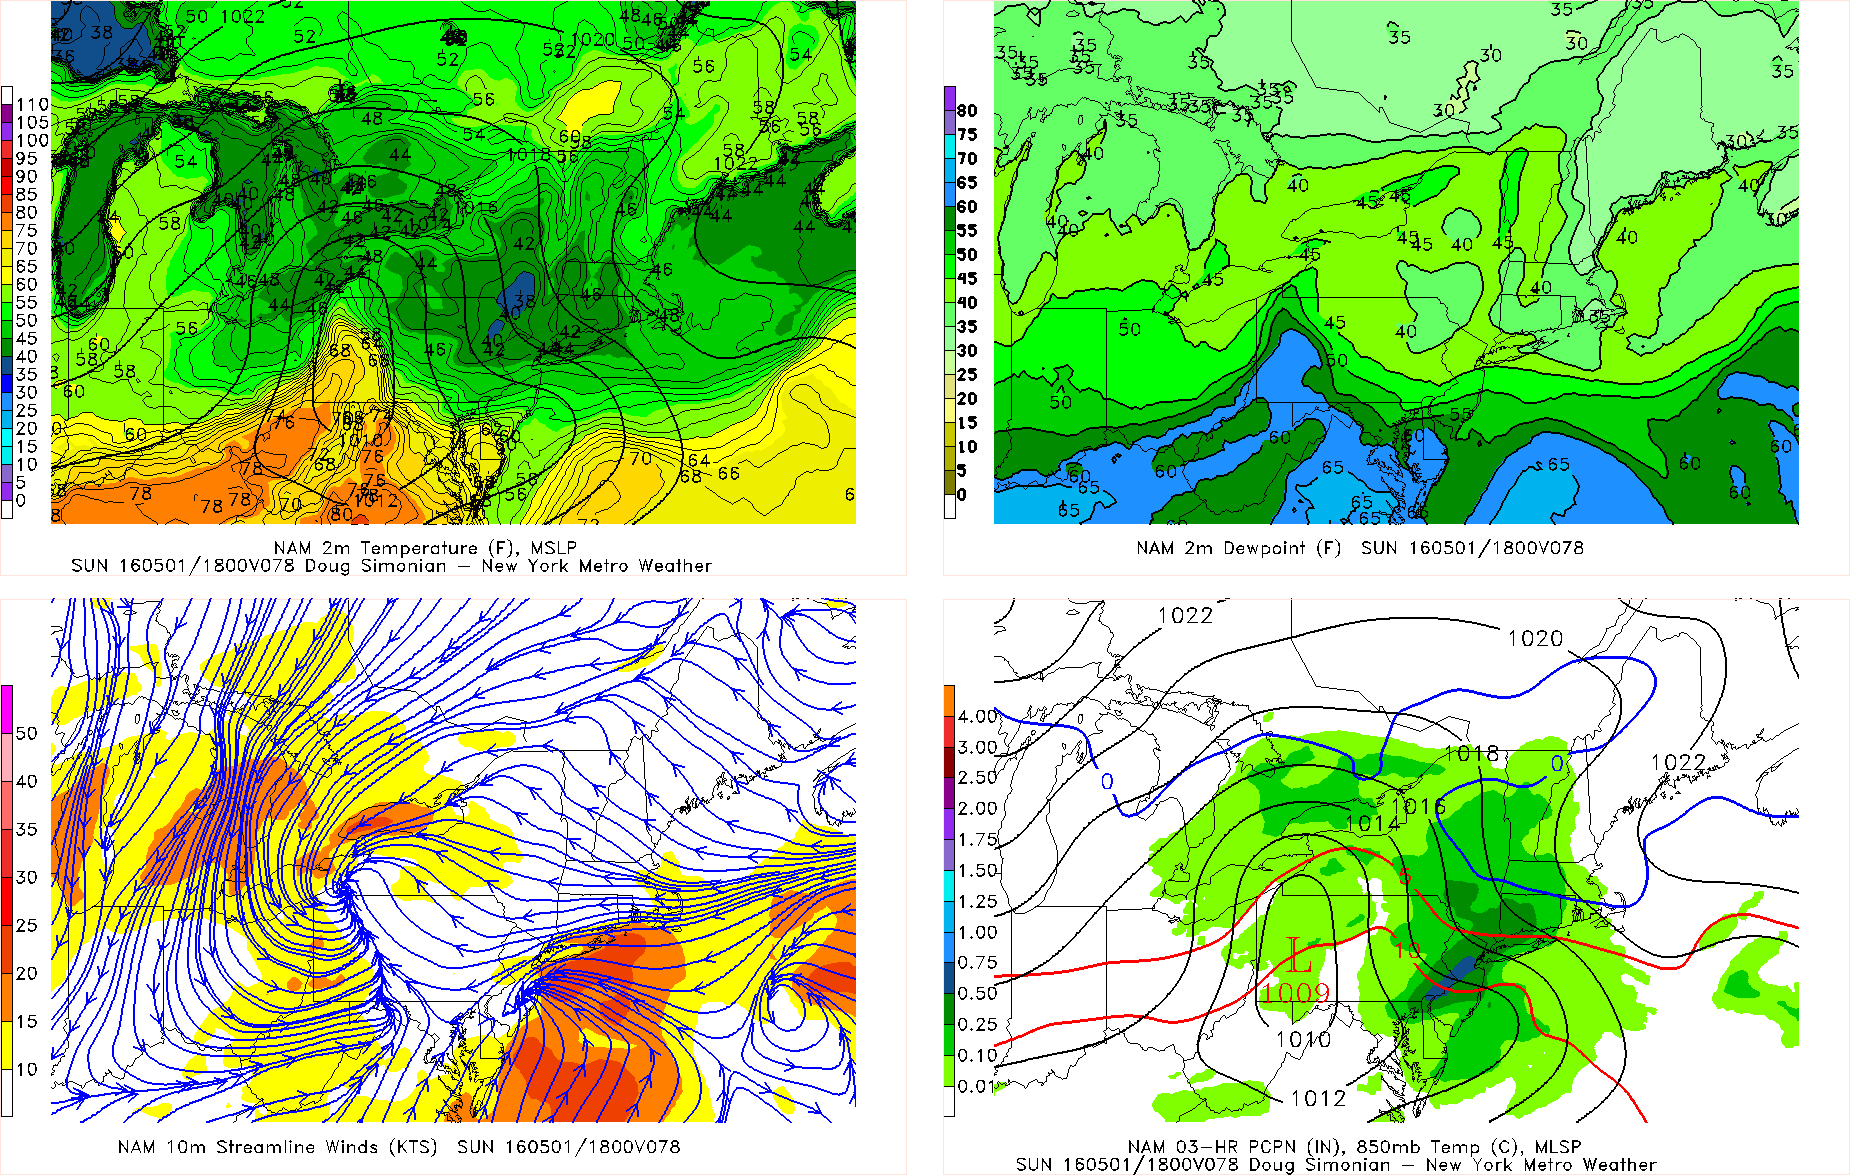 NAM model showing the next storm bringingrainfall with onshore winds and temperatures in 40s on Sunday afternoon